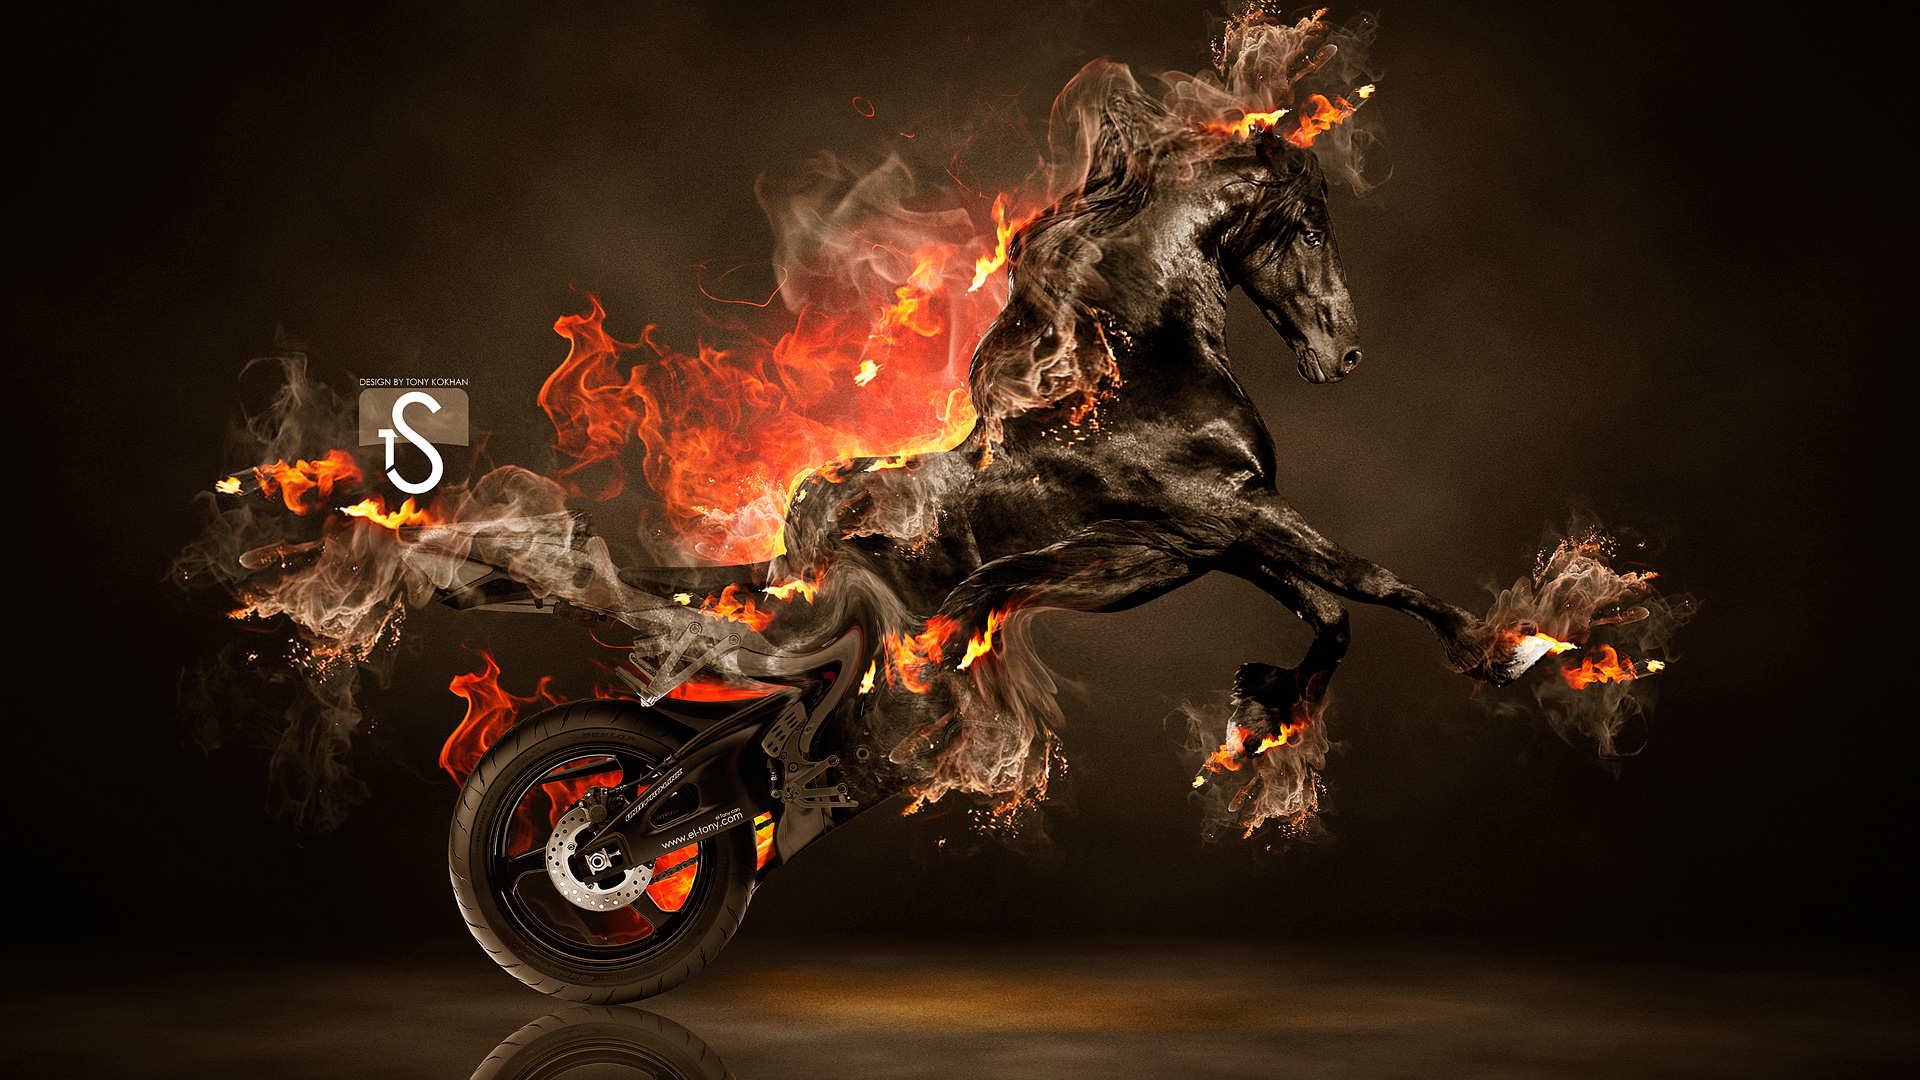 ducati diavel tiger fire - photo #3